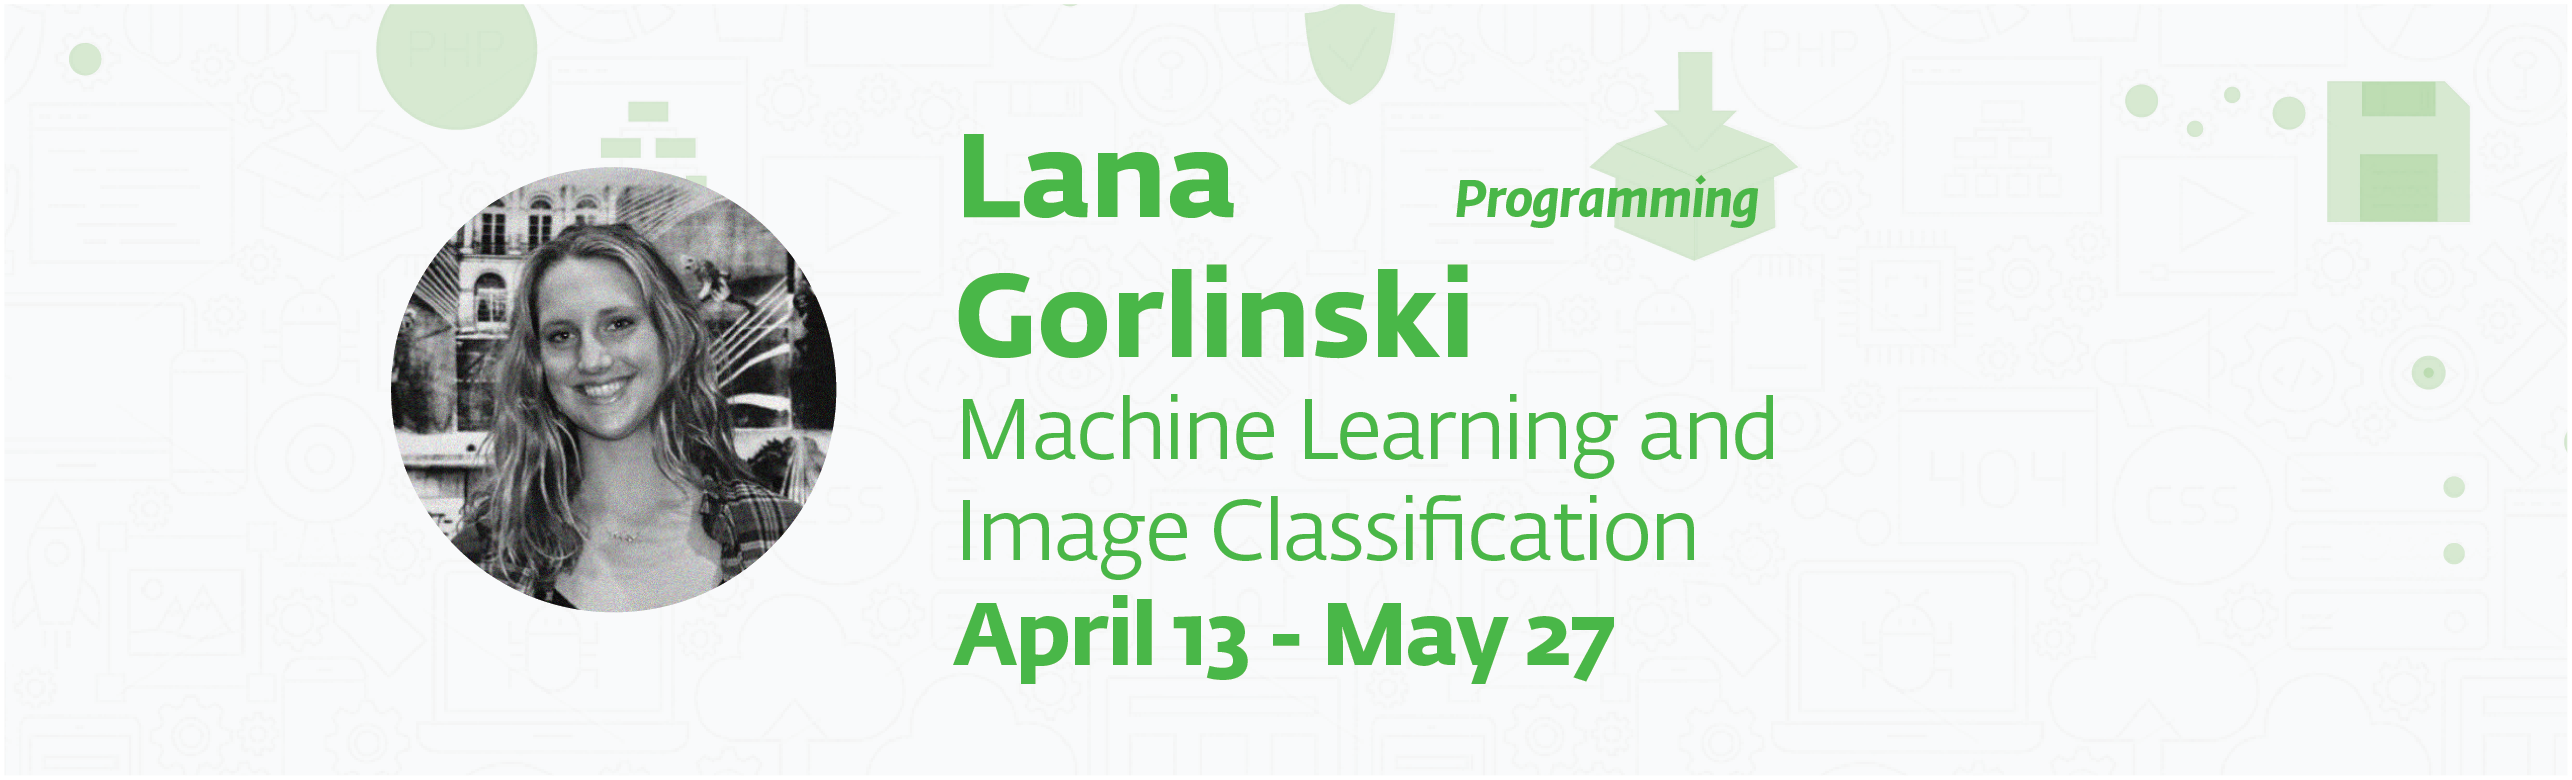 each page 26 - Machine Learning and Image Classification